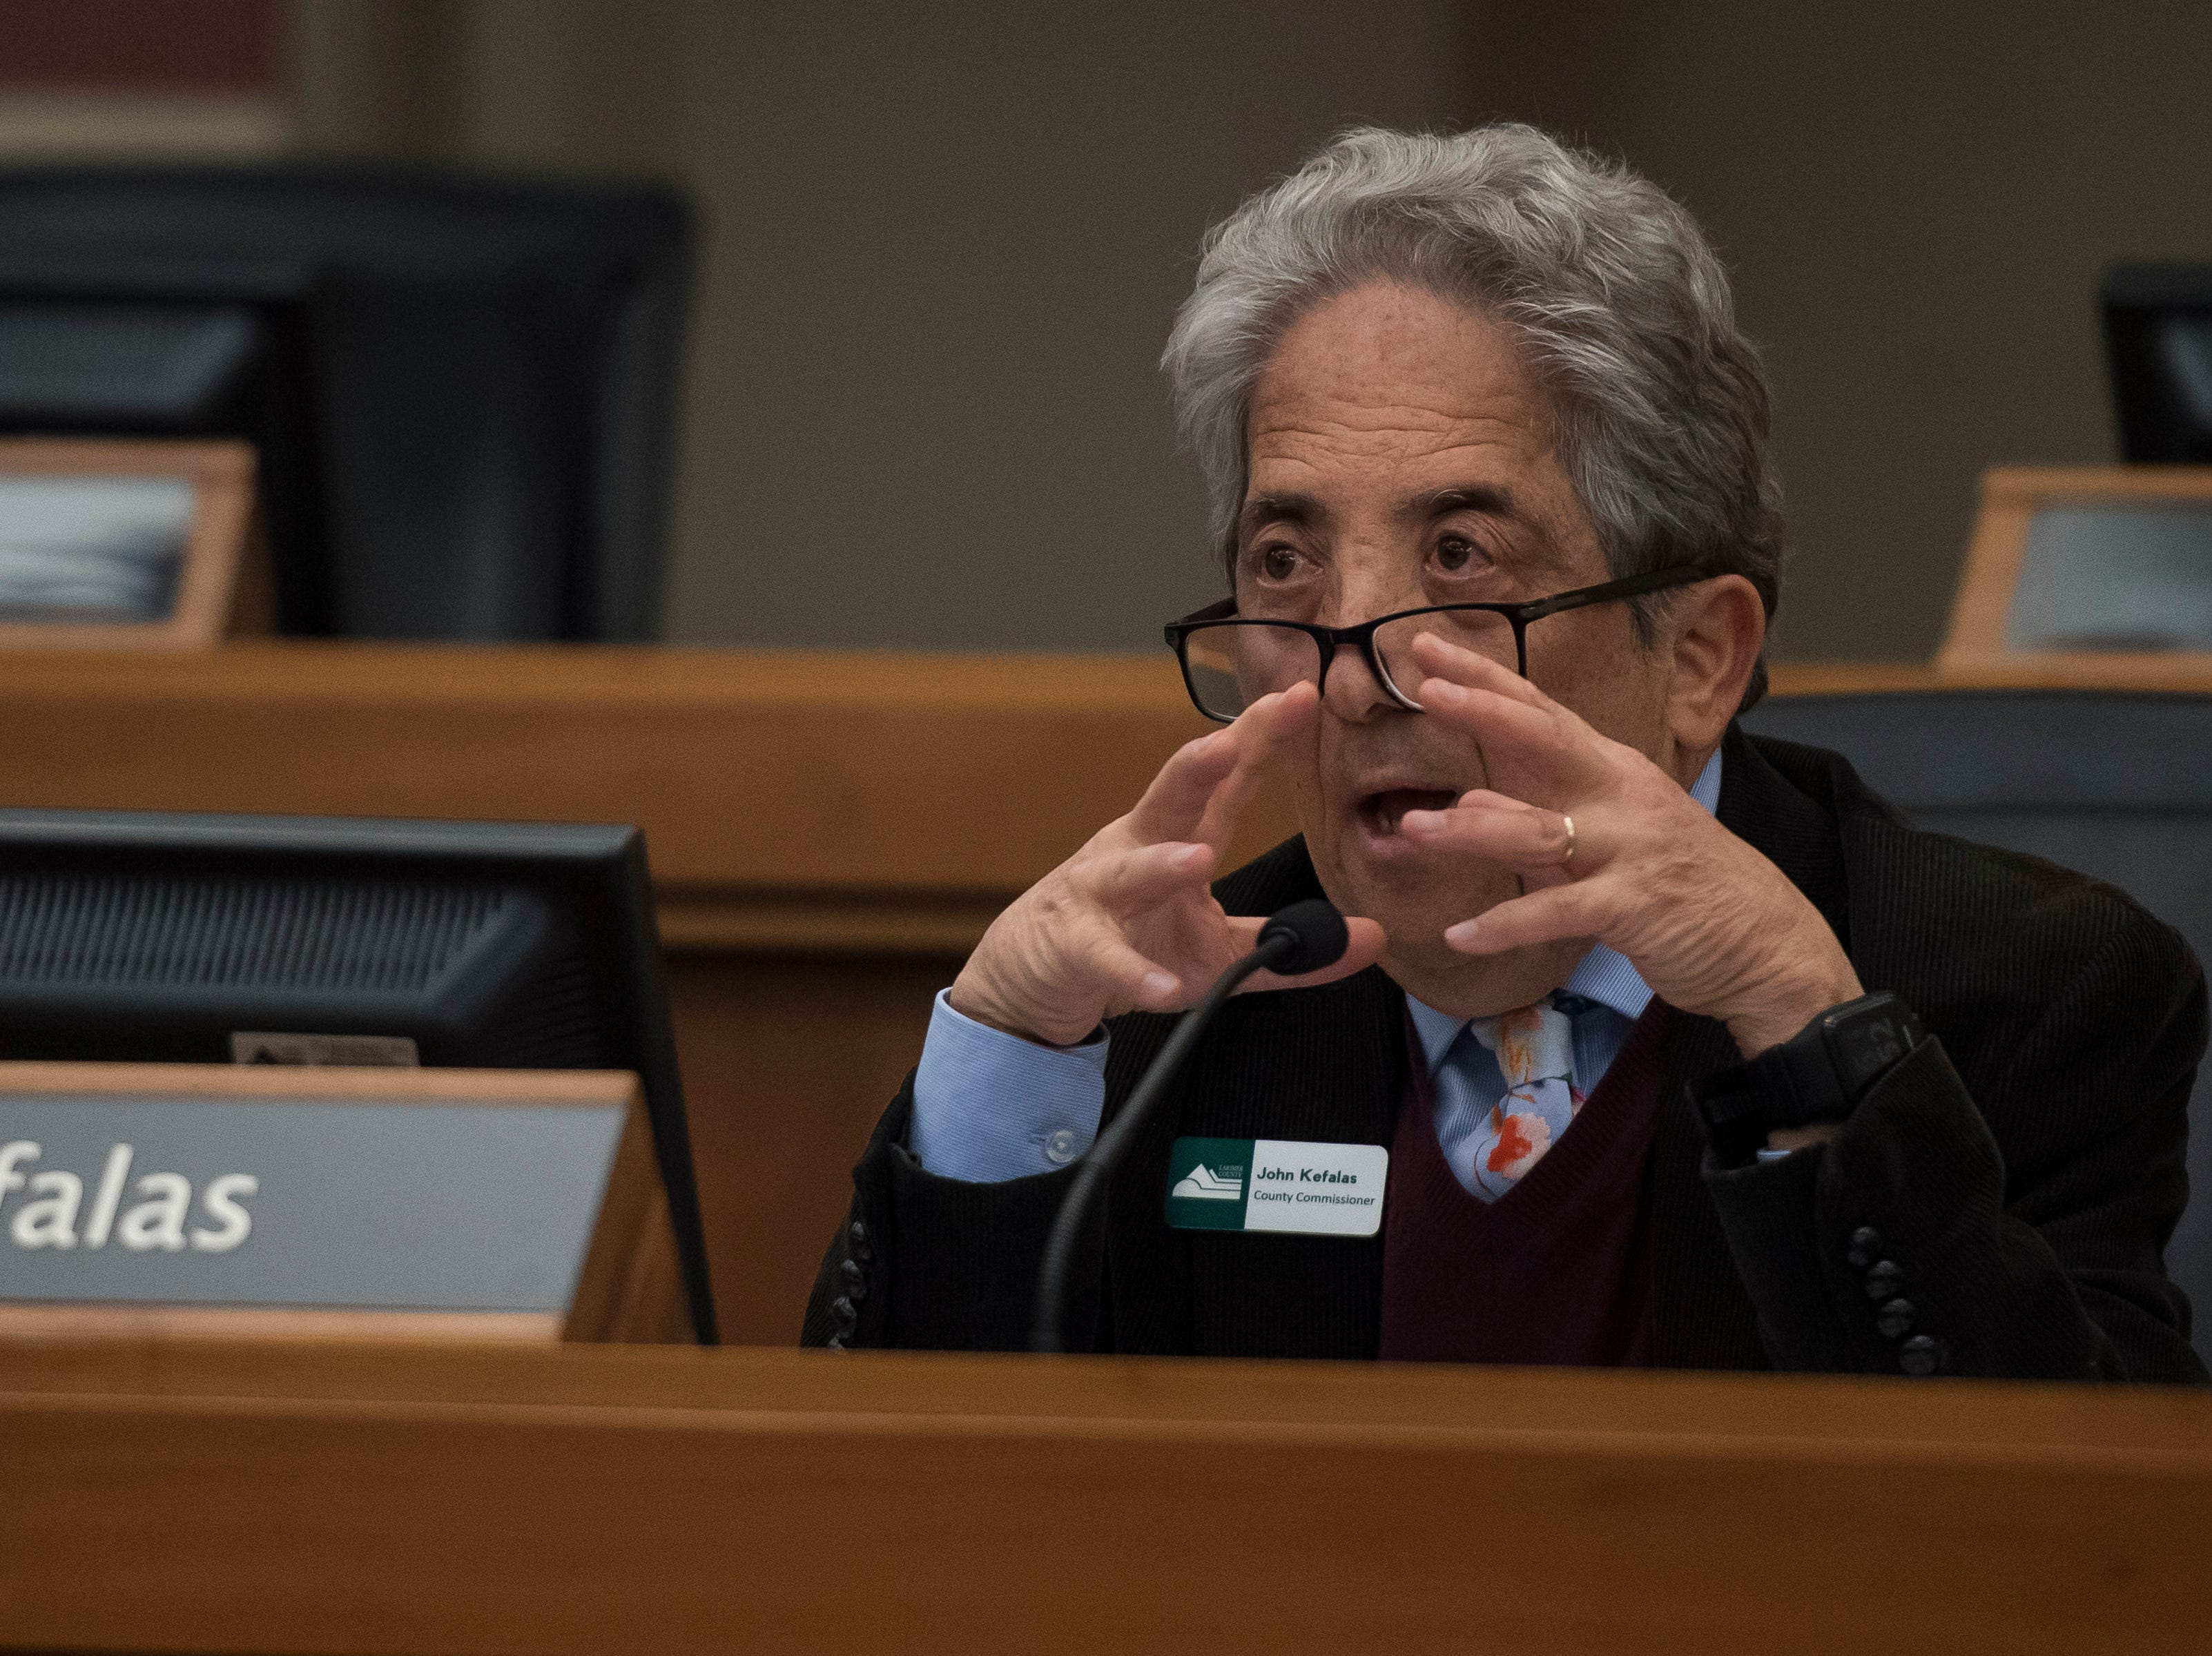 Larimer County District one commissioner John Kefalas asks Director of the Thornton Water Project Mark Koleber questions before the county commissioners ultimately voted against the current proposal for construction of the Thornton pipeline on Monday, Feb. 11, 2019, in Fort Collins, Colo.